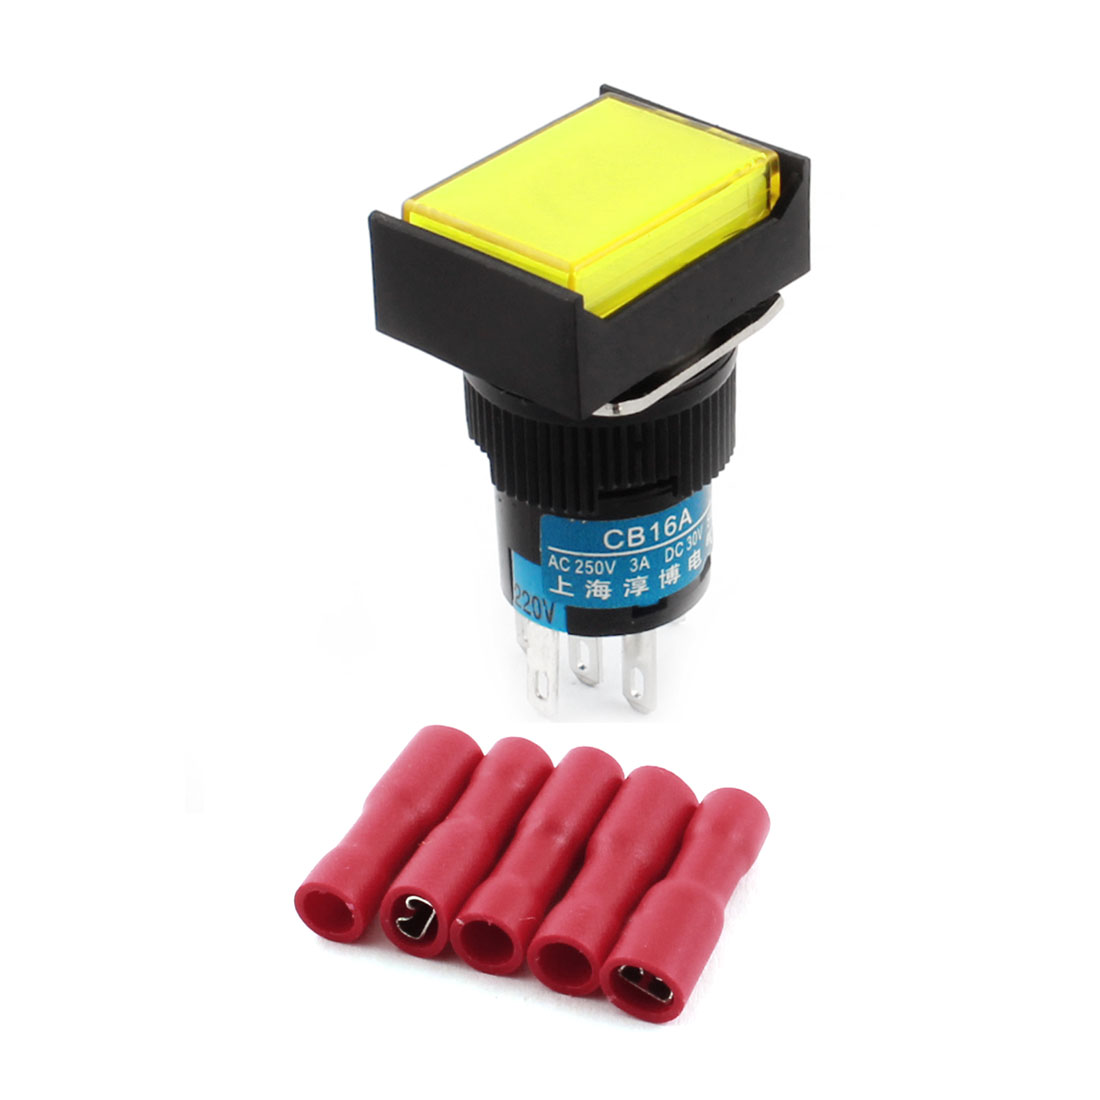 AC220V Yellow Light Lamp Momentary Pushbutton Switch + 5 x Crimp Connectors